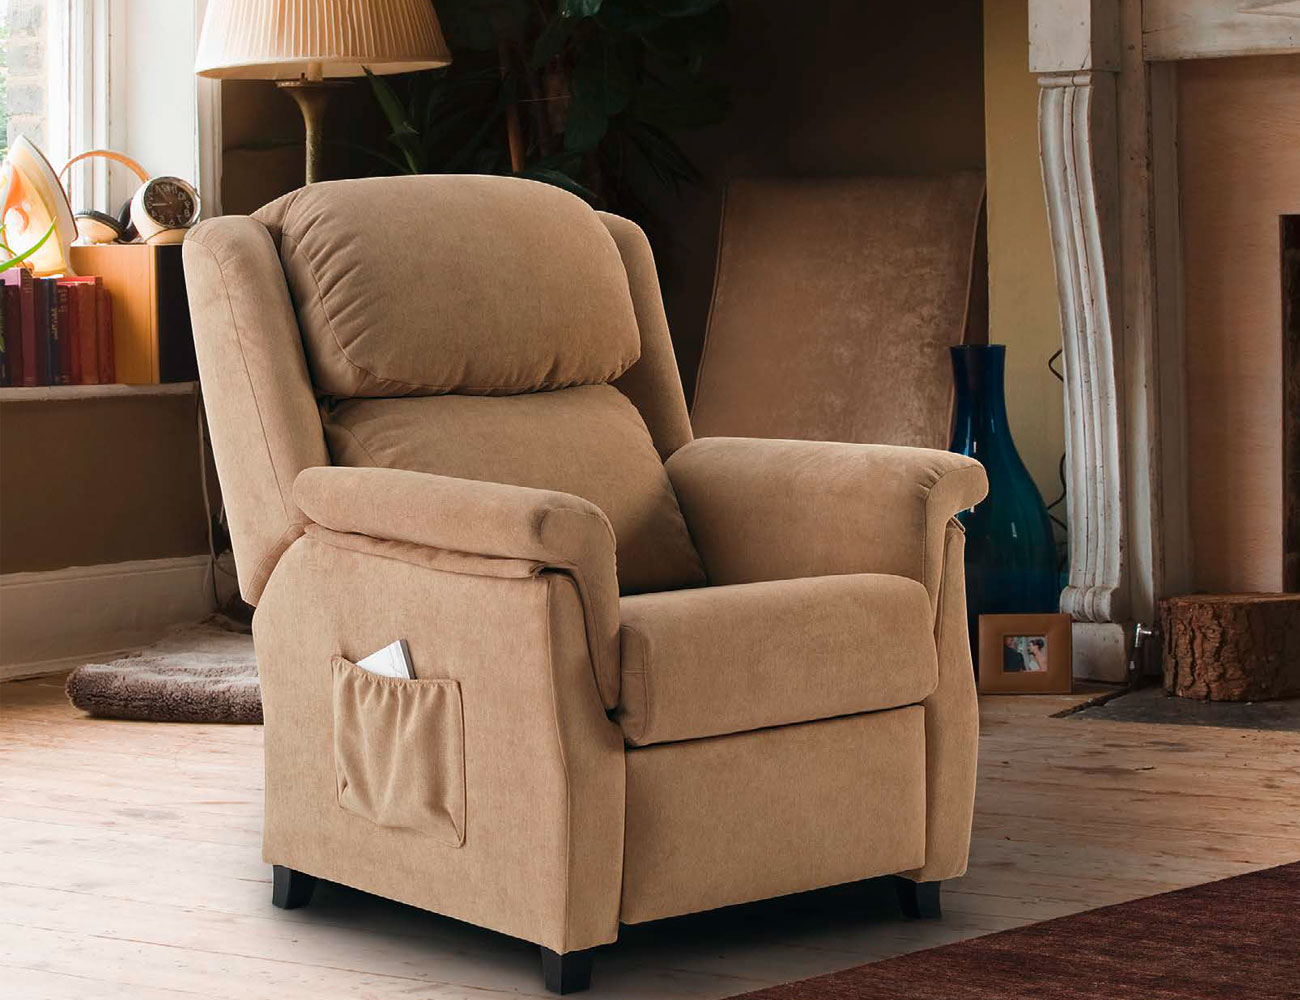 Sillon relax manual bianca 1